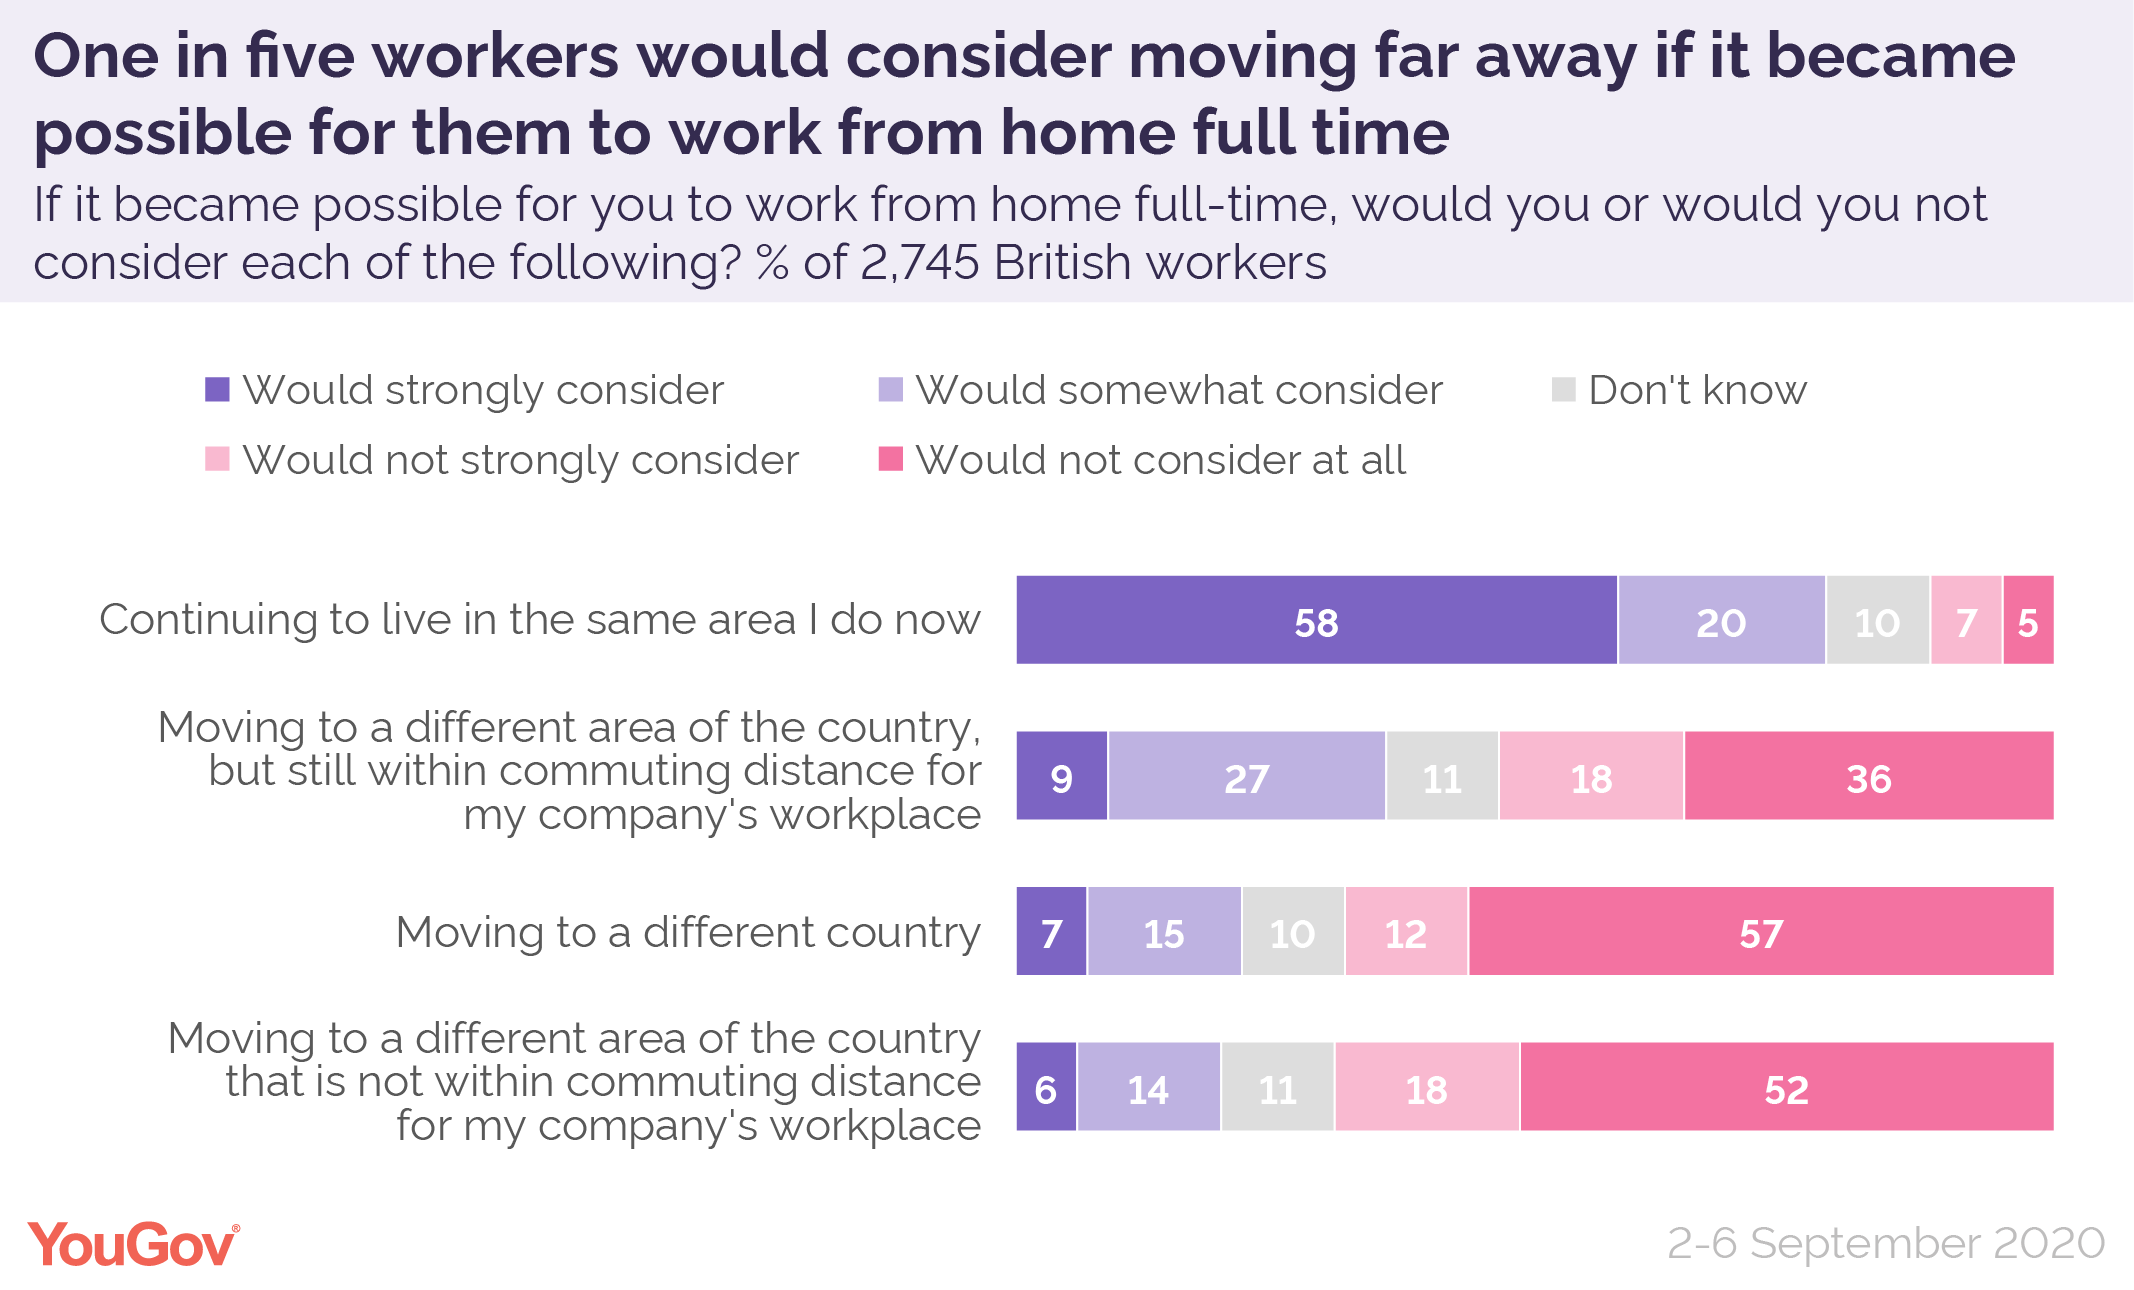 Most expect companies to continue to allow working from home, with a sizeable minority considering relocating